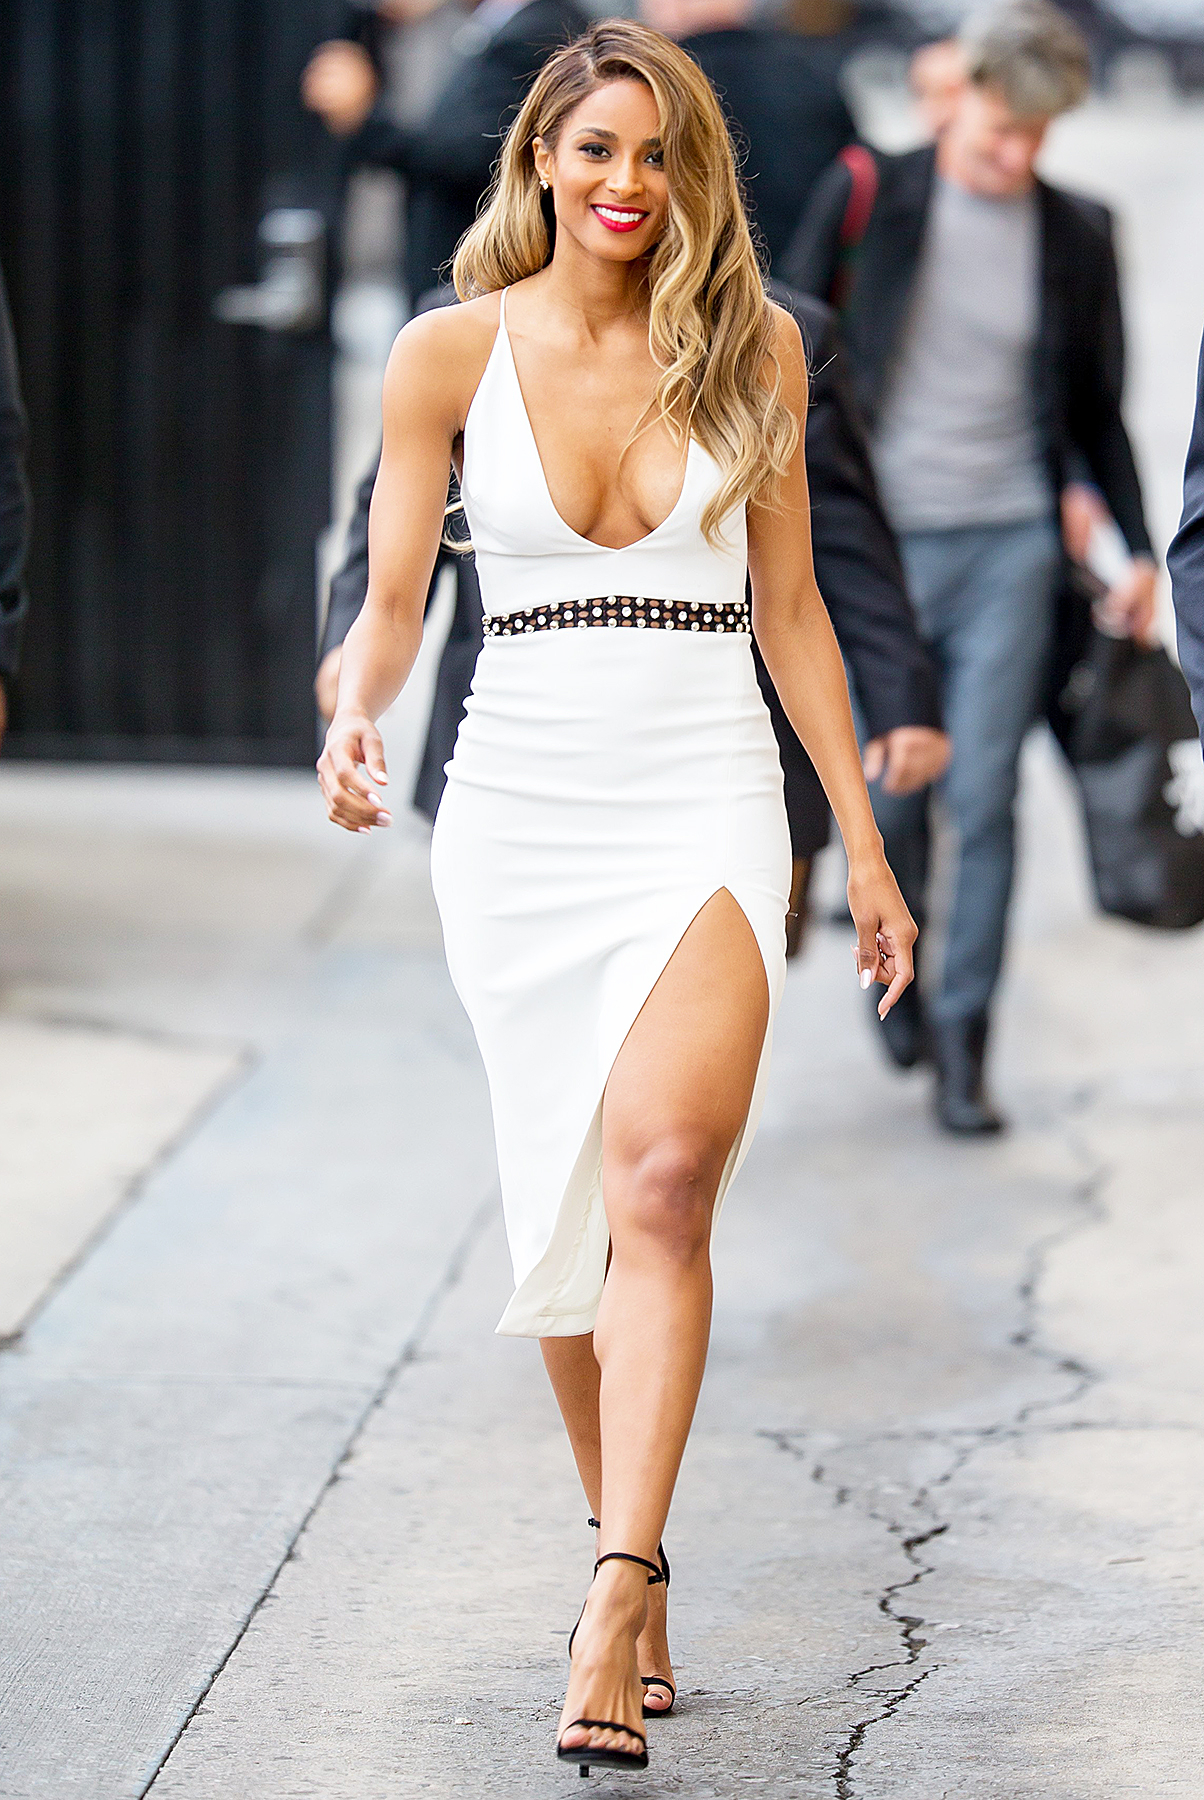 Ciara Stuns In Plunging White Dress With High Slit Photos